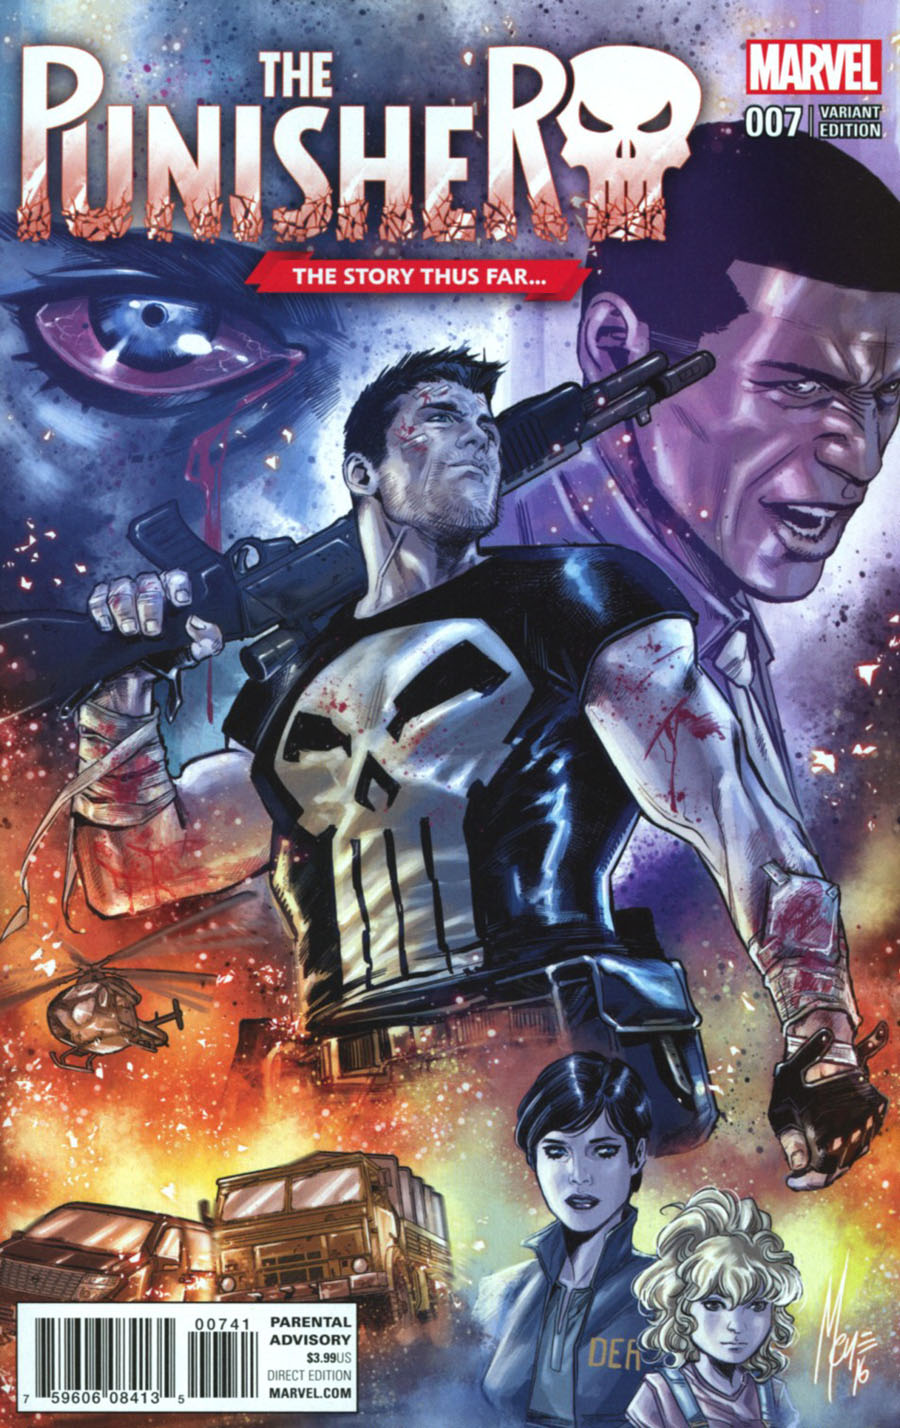 Punisher Vol 10 #7 Cover B Variant Marco Checchetto Story Thus Far Cover (Marvel Now Tie-In)